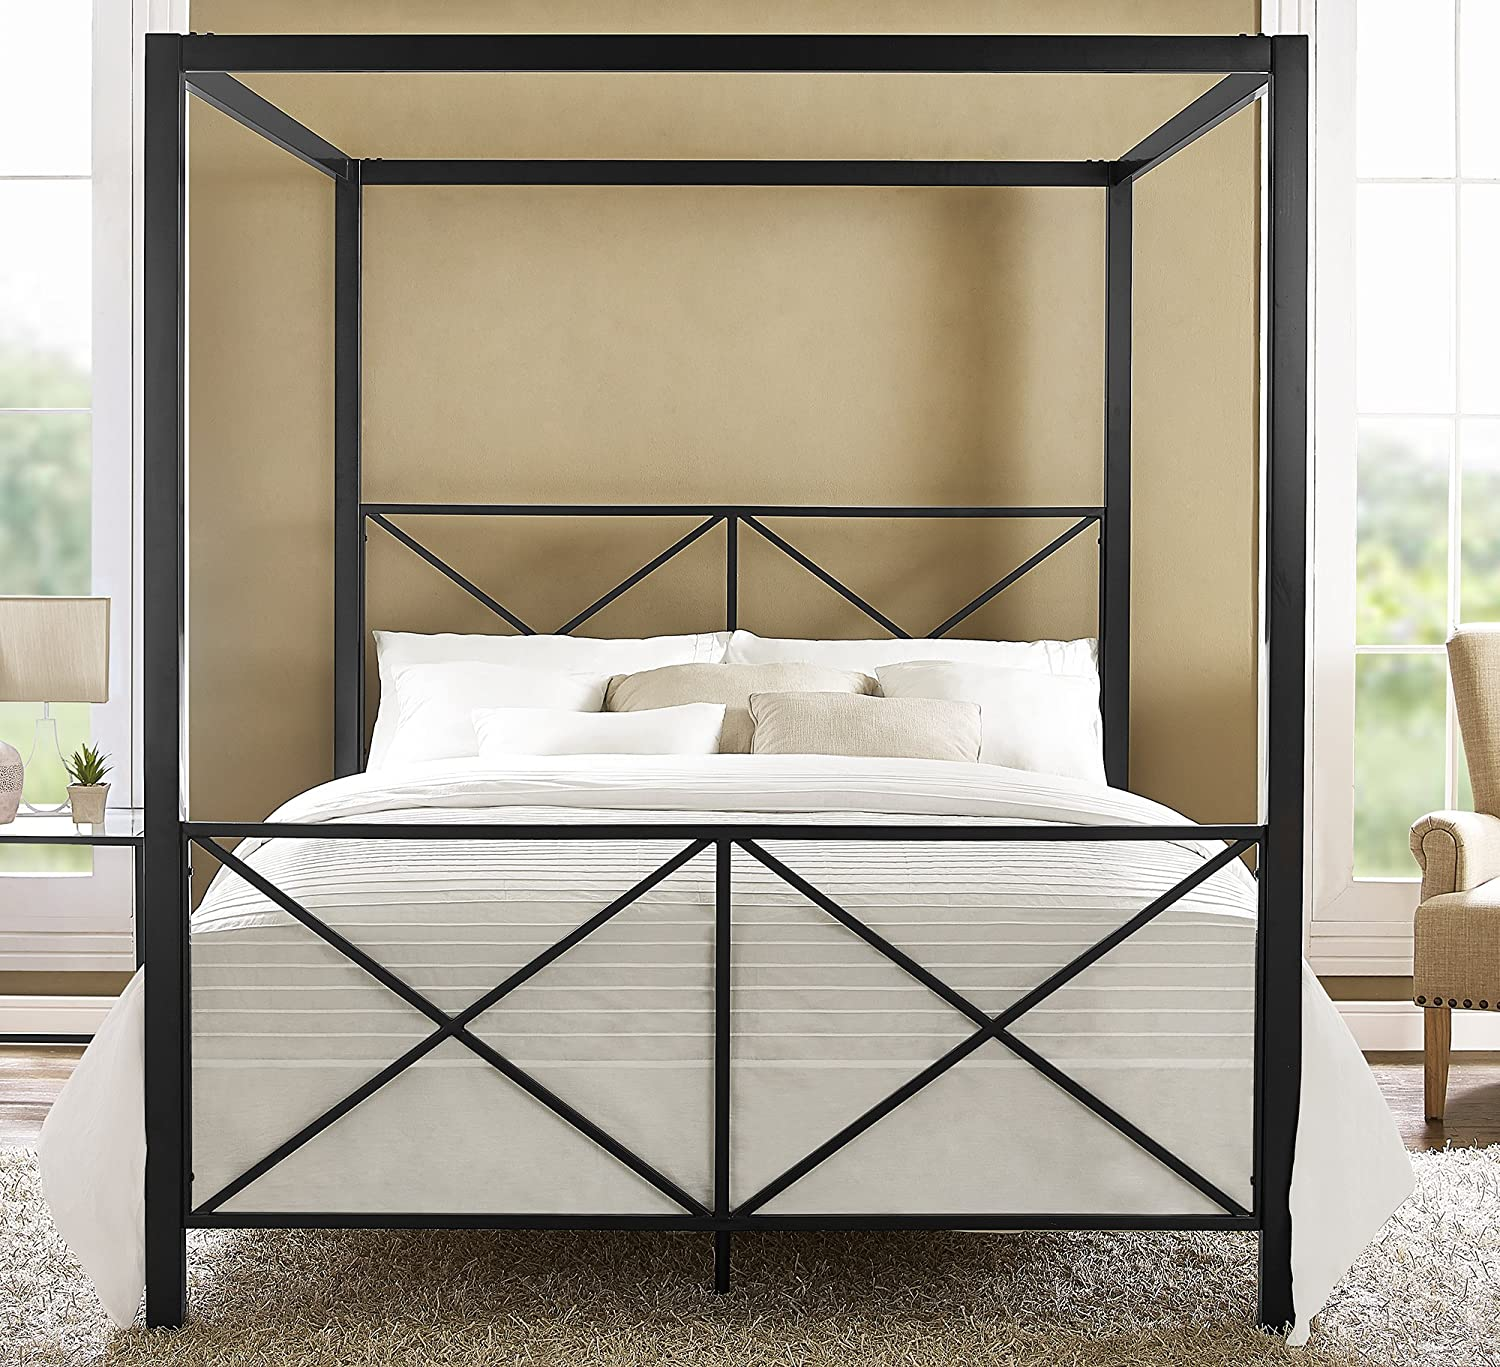 Amazon DHP Rosedale Metal Canopy Bed Queen Size Black